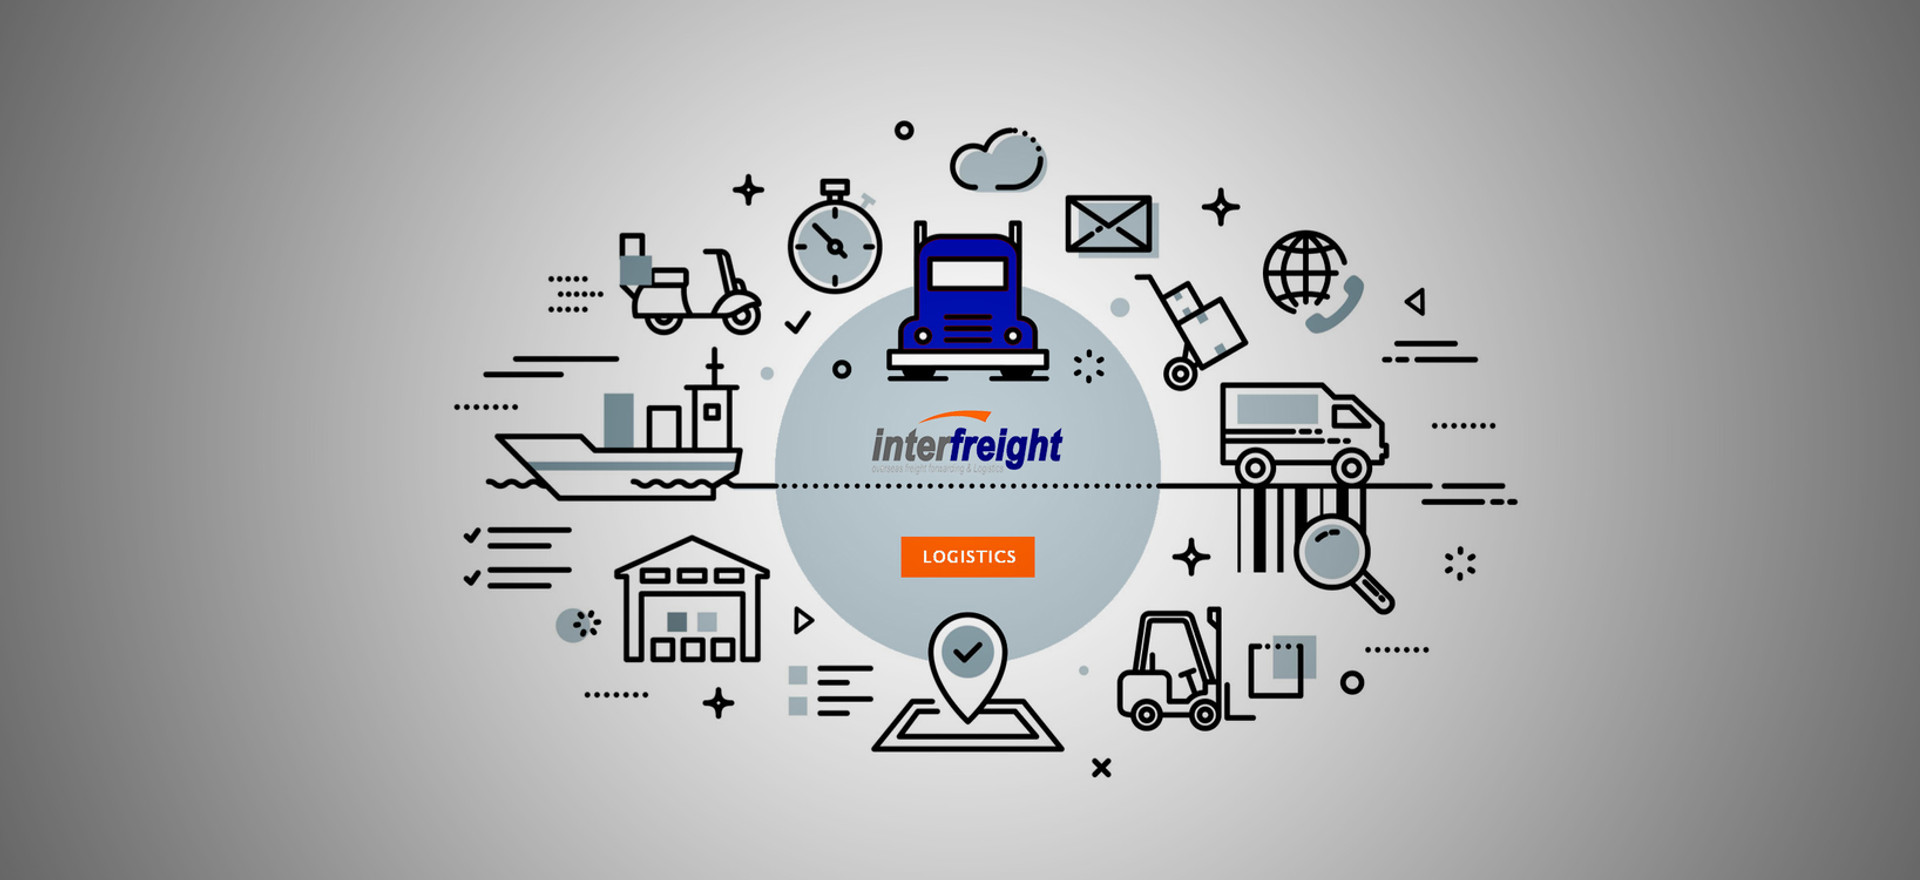 interfreight log cyce_wide gradient.jpg